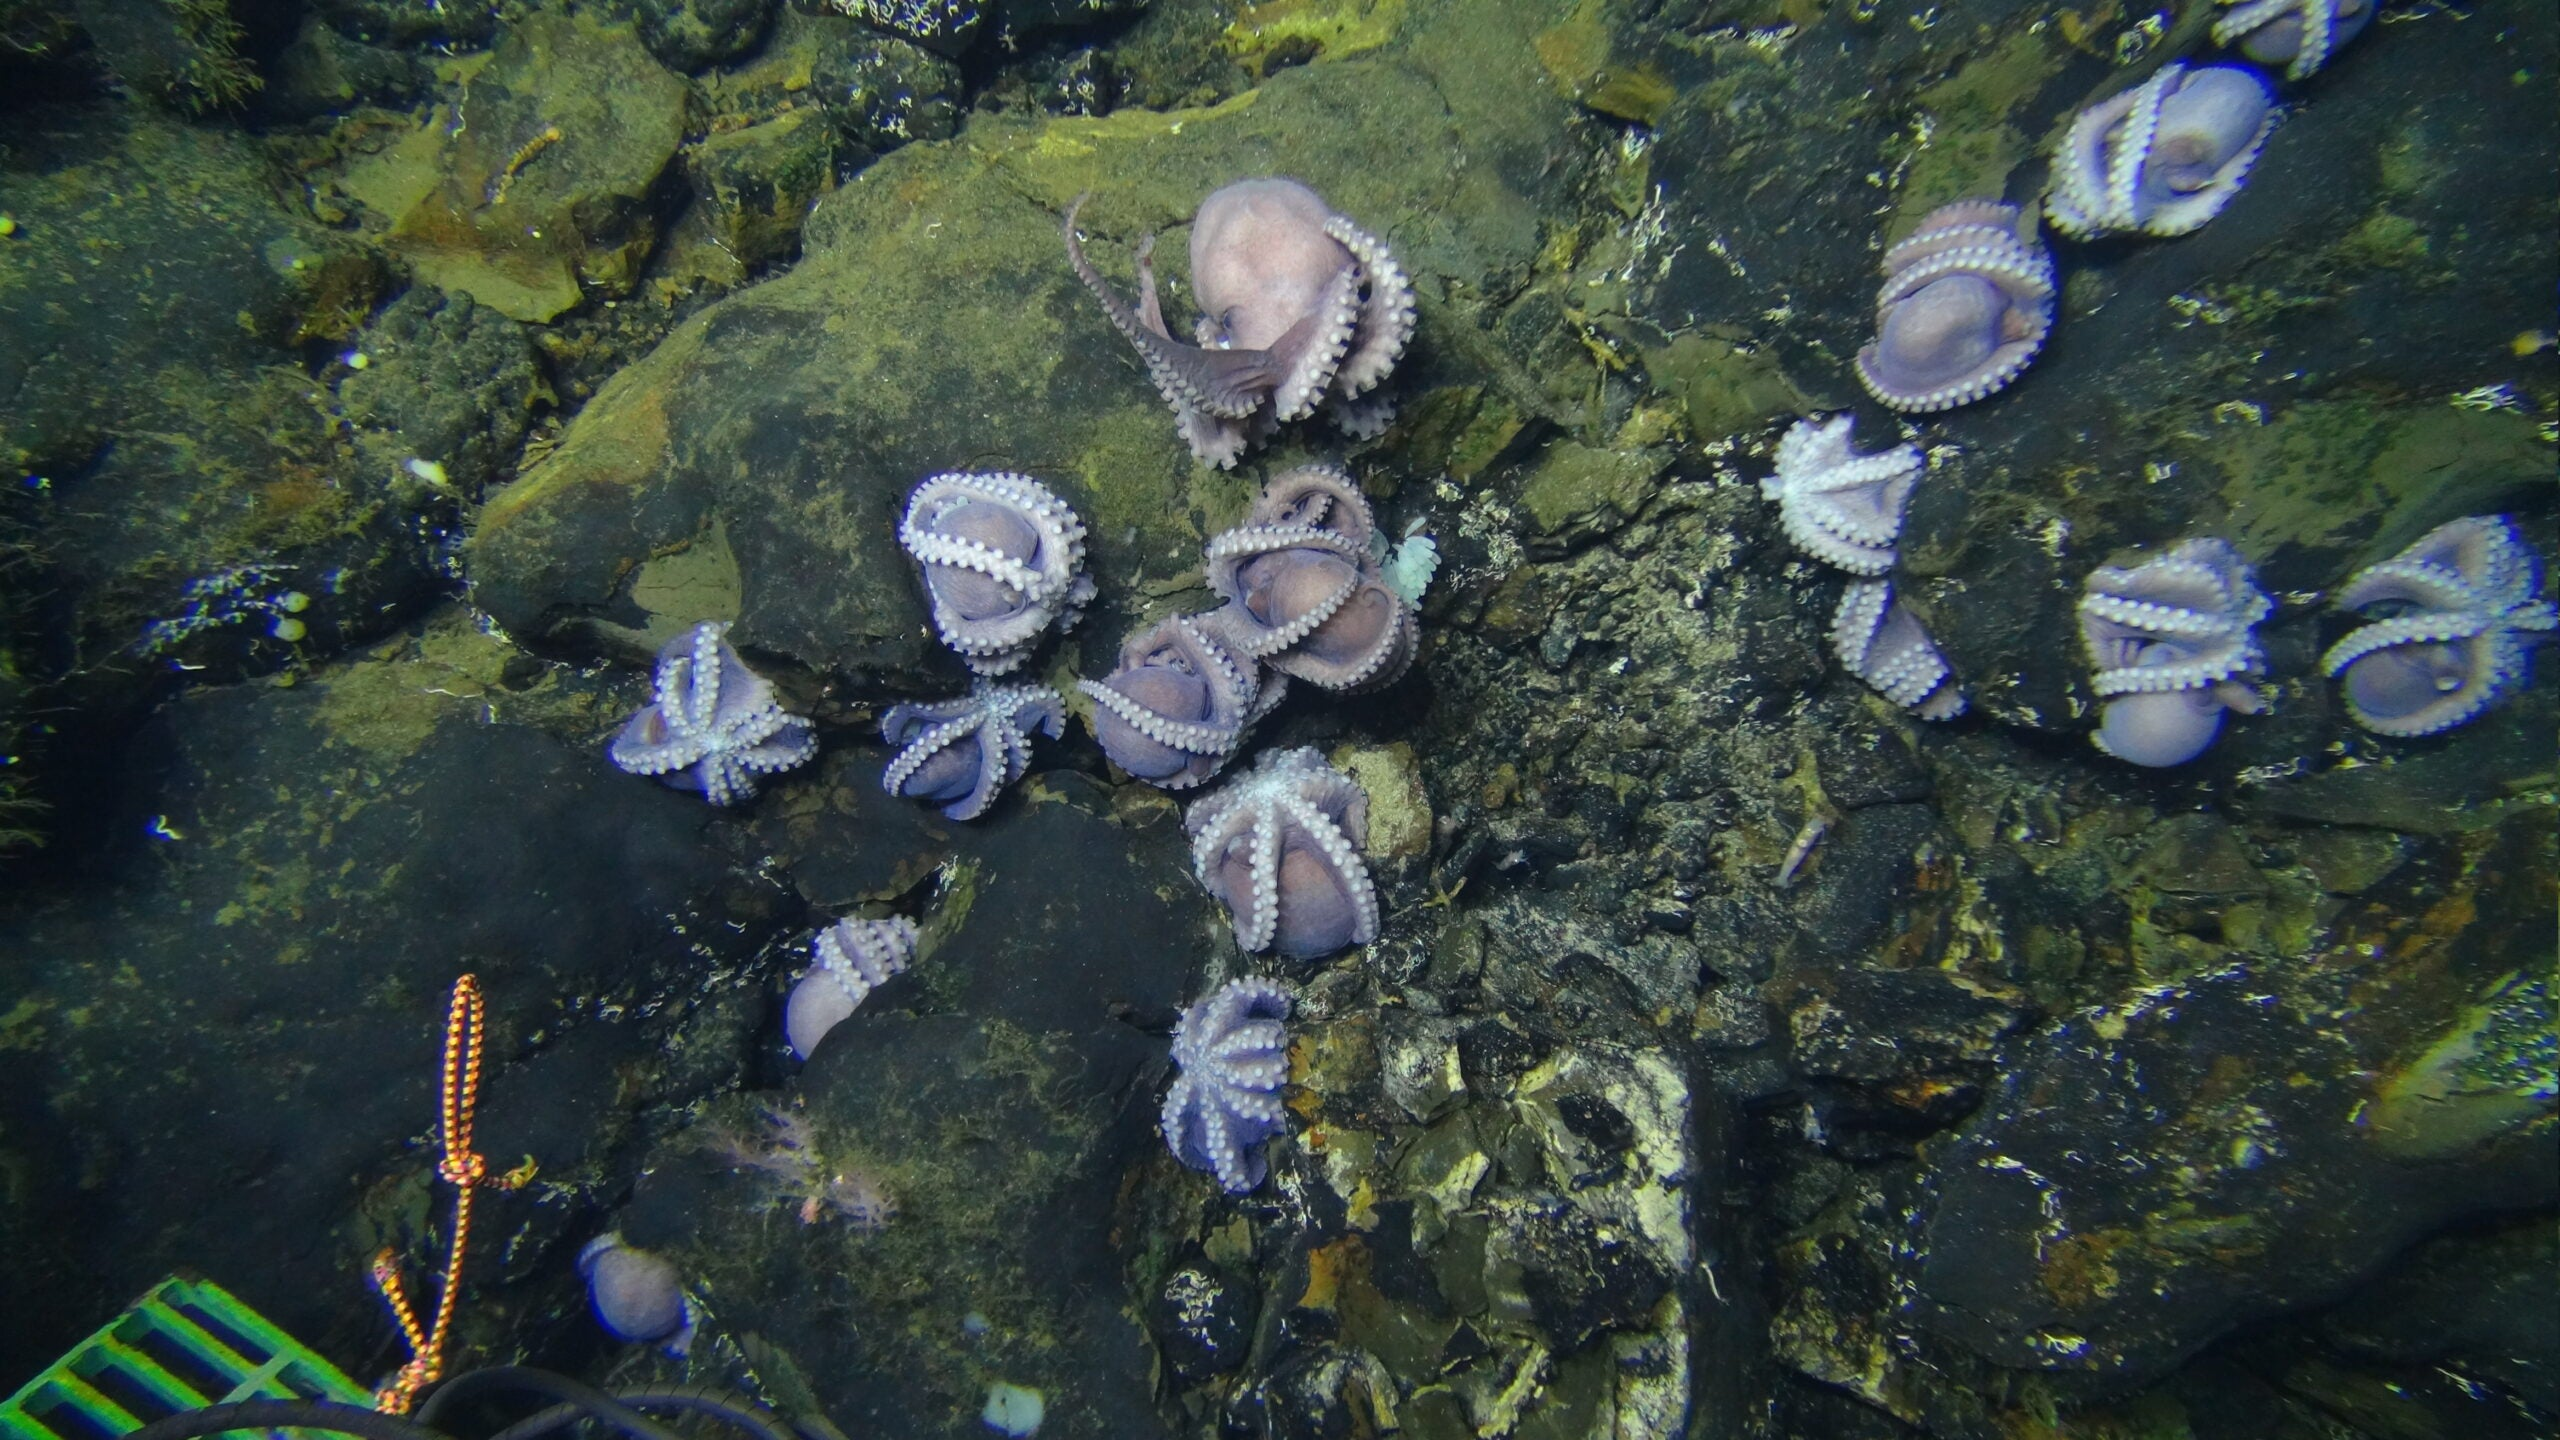 Octopuses on the outcrop